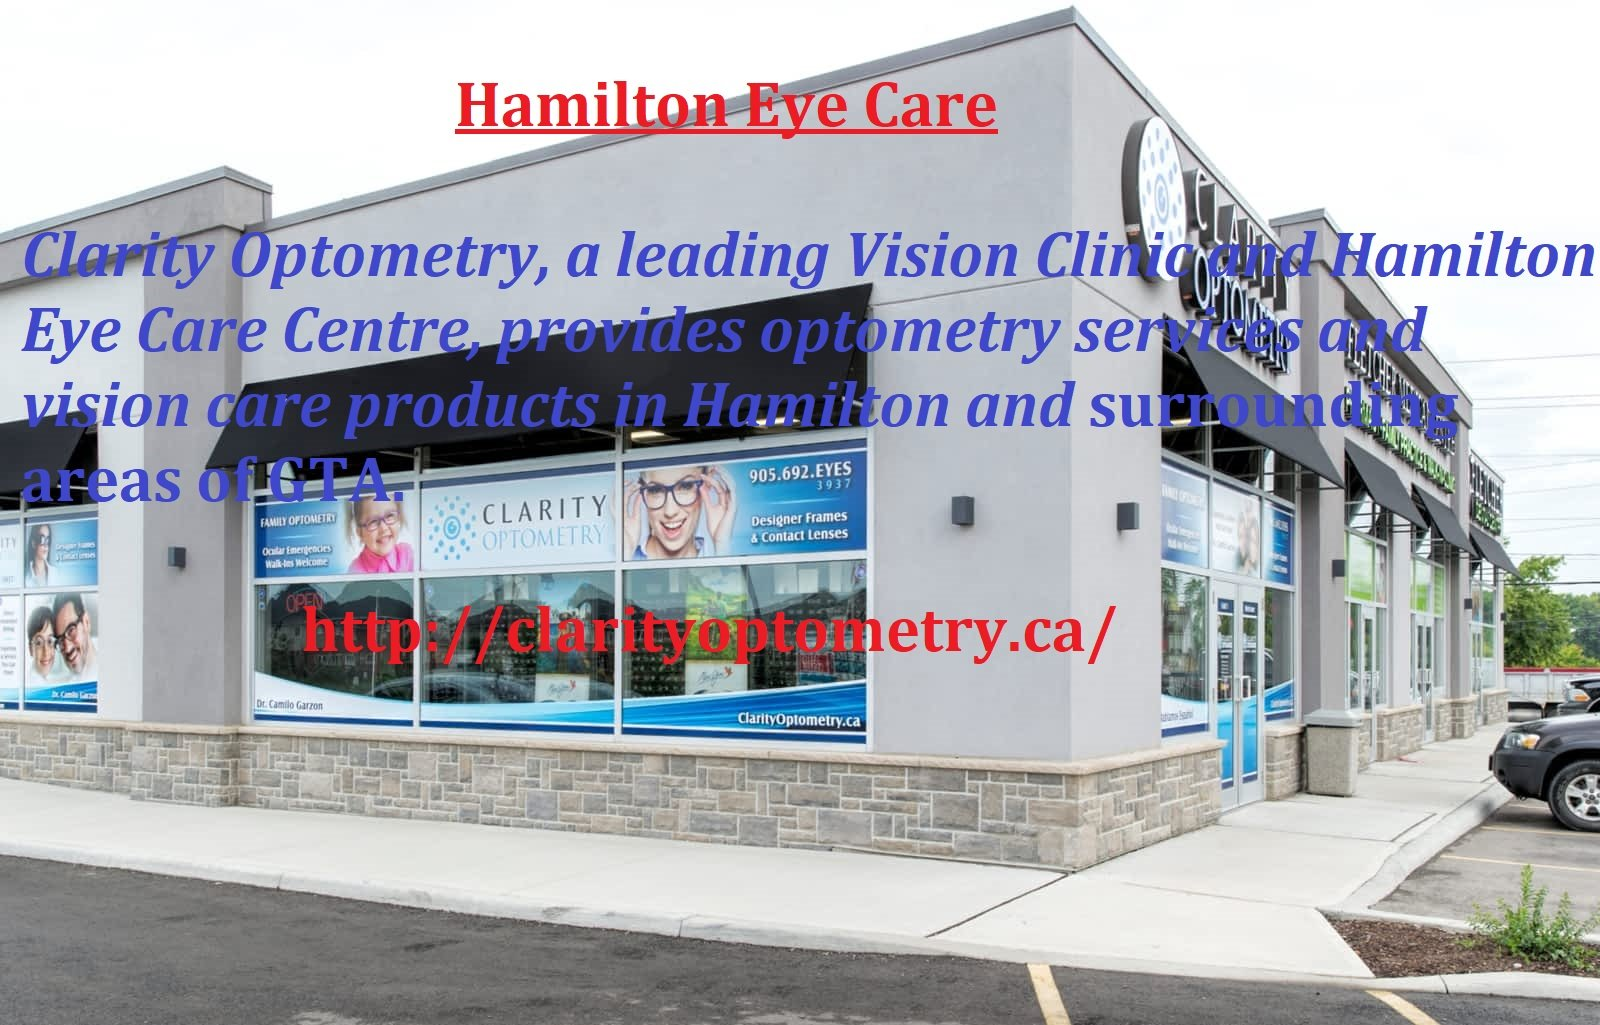 Hamilton Eye Care Clinics - The Complete Eye Solution